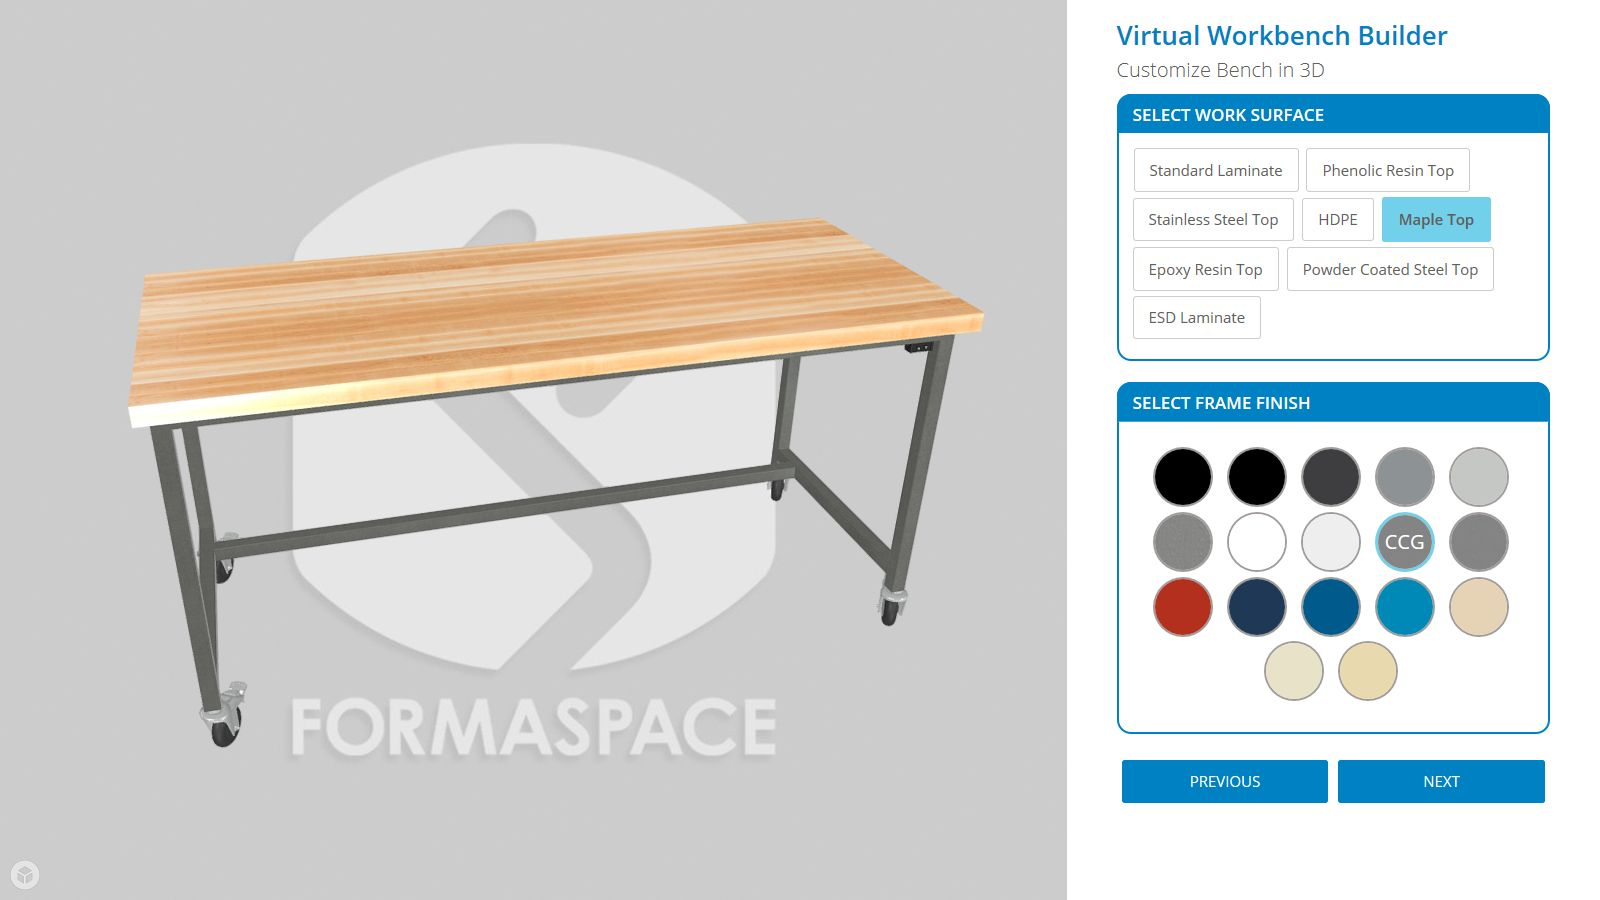 3D Virtual Workbench Builder page 2